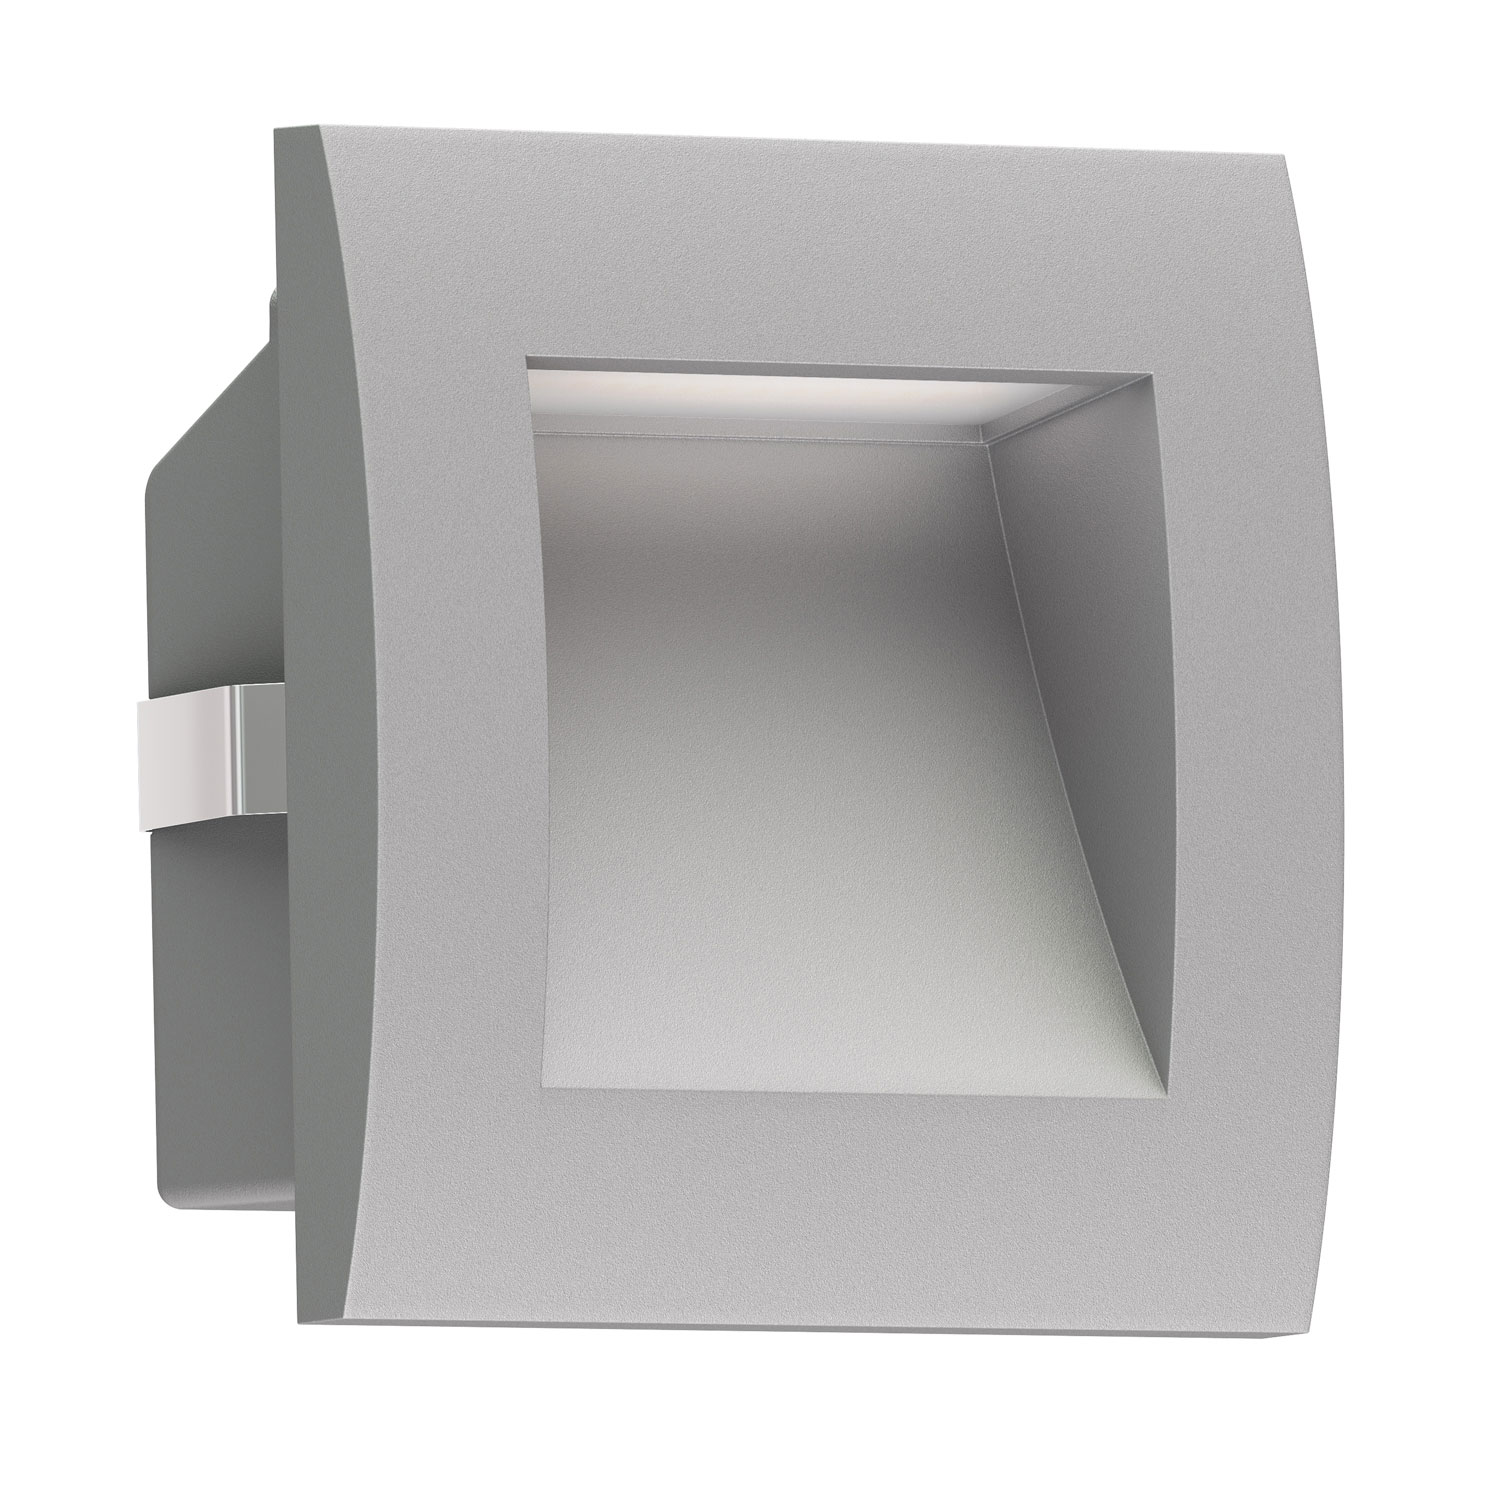 Ledscom led recessed wall light zibal for outdoor grey warm white ledscom led recessed wall light zibal for outdoor grey warm white aloadofball Image collections